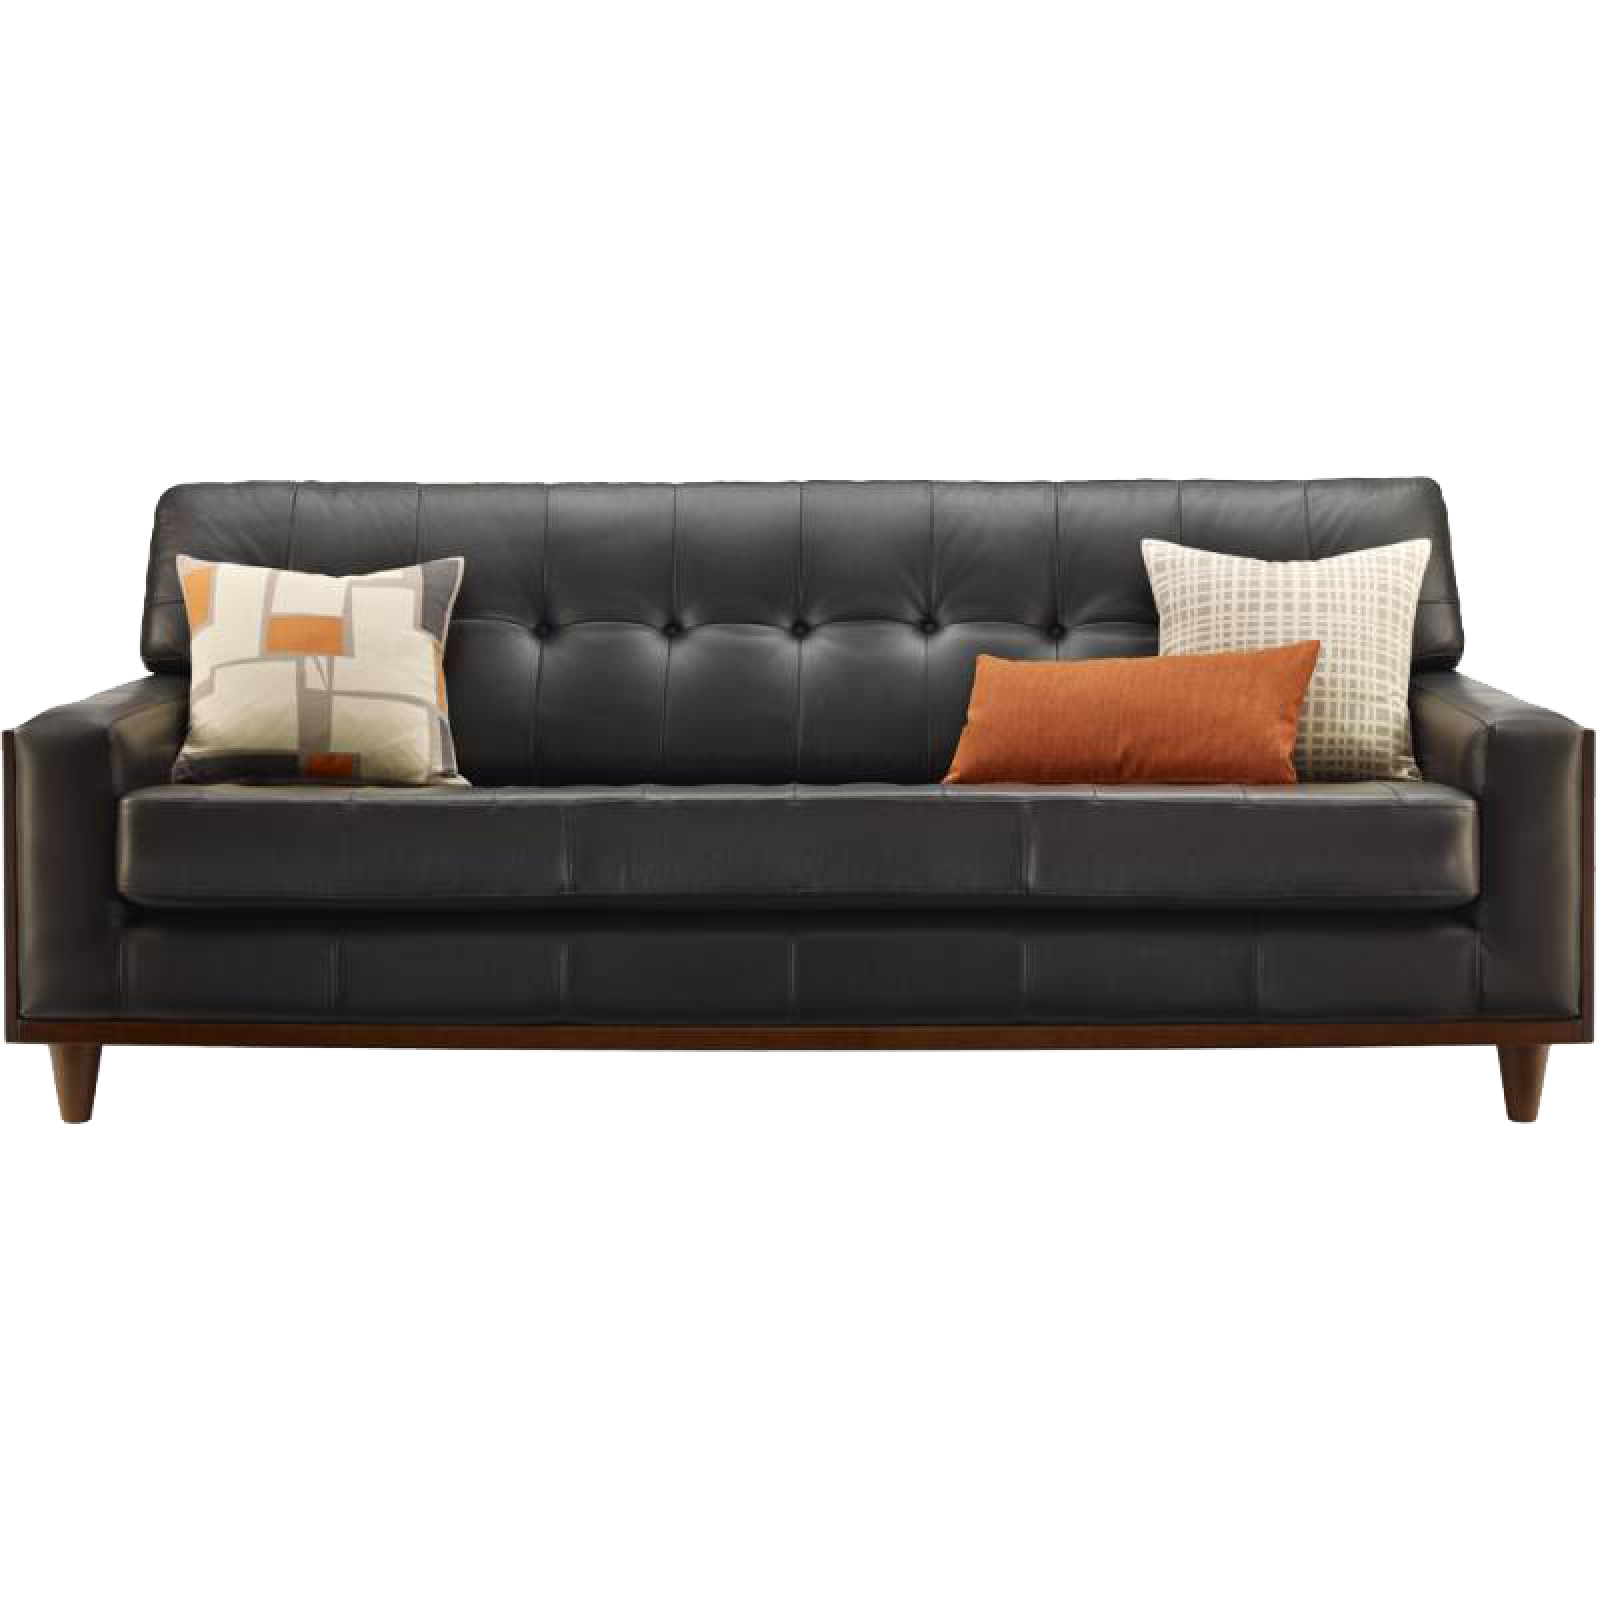 G Plan Vintage The Fifty Nine Large Leather Sofa